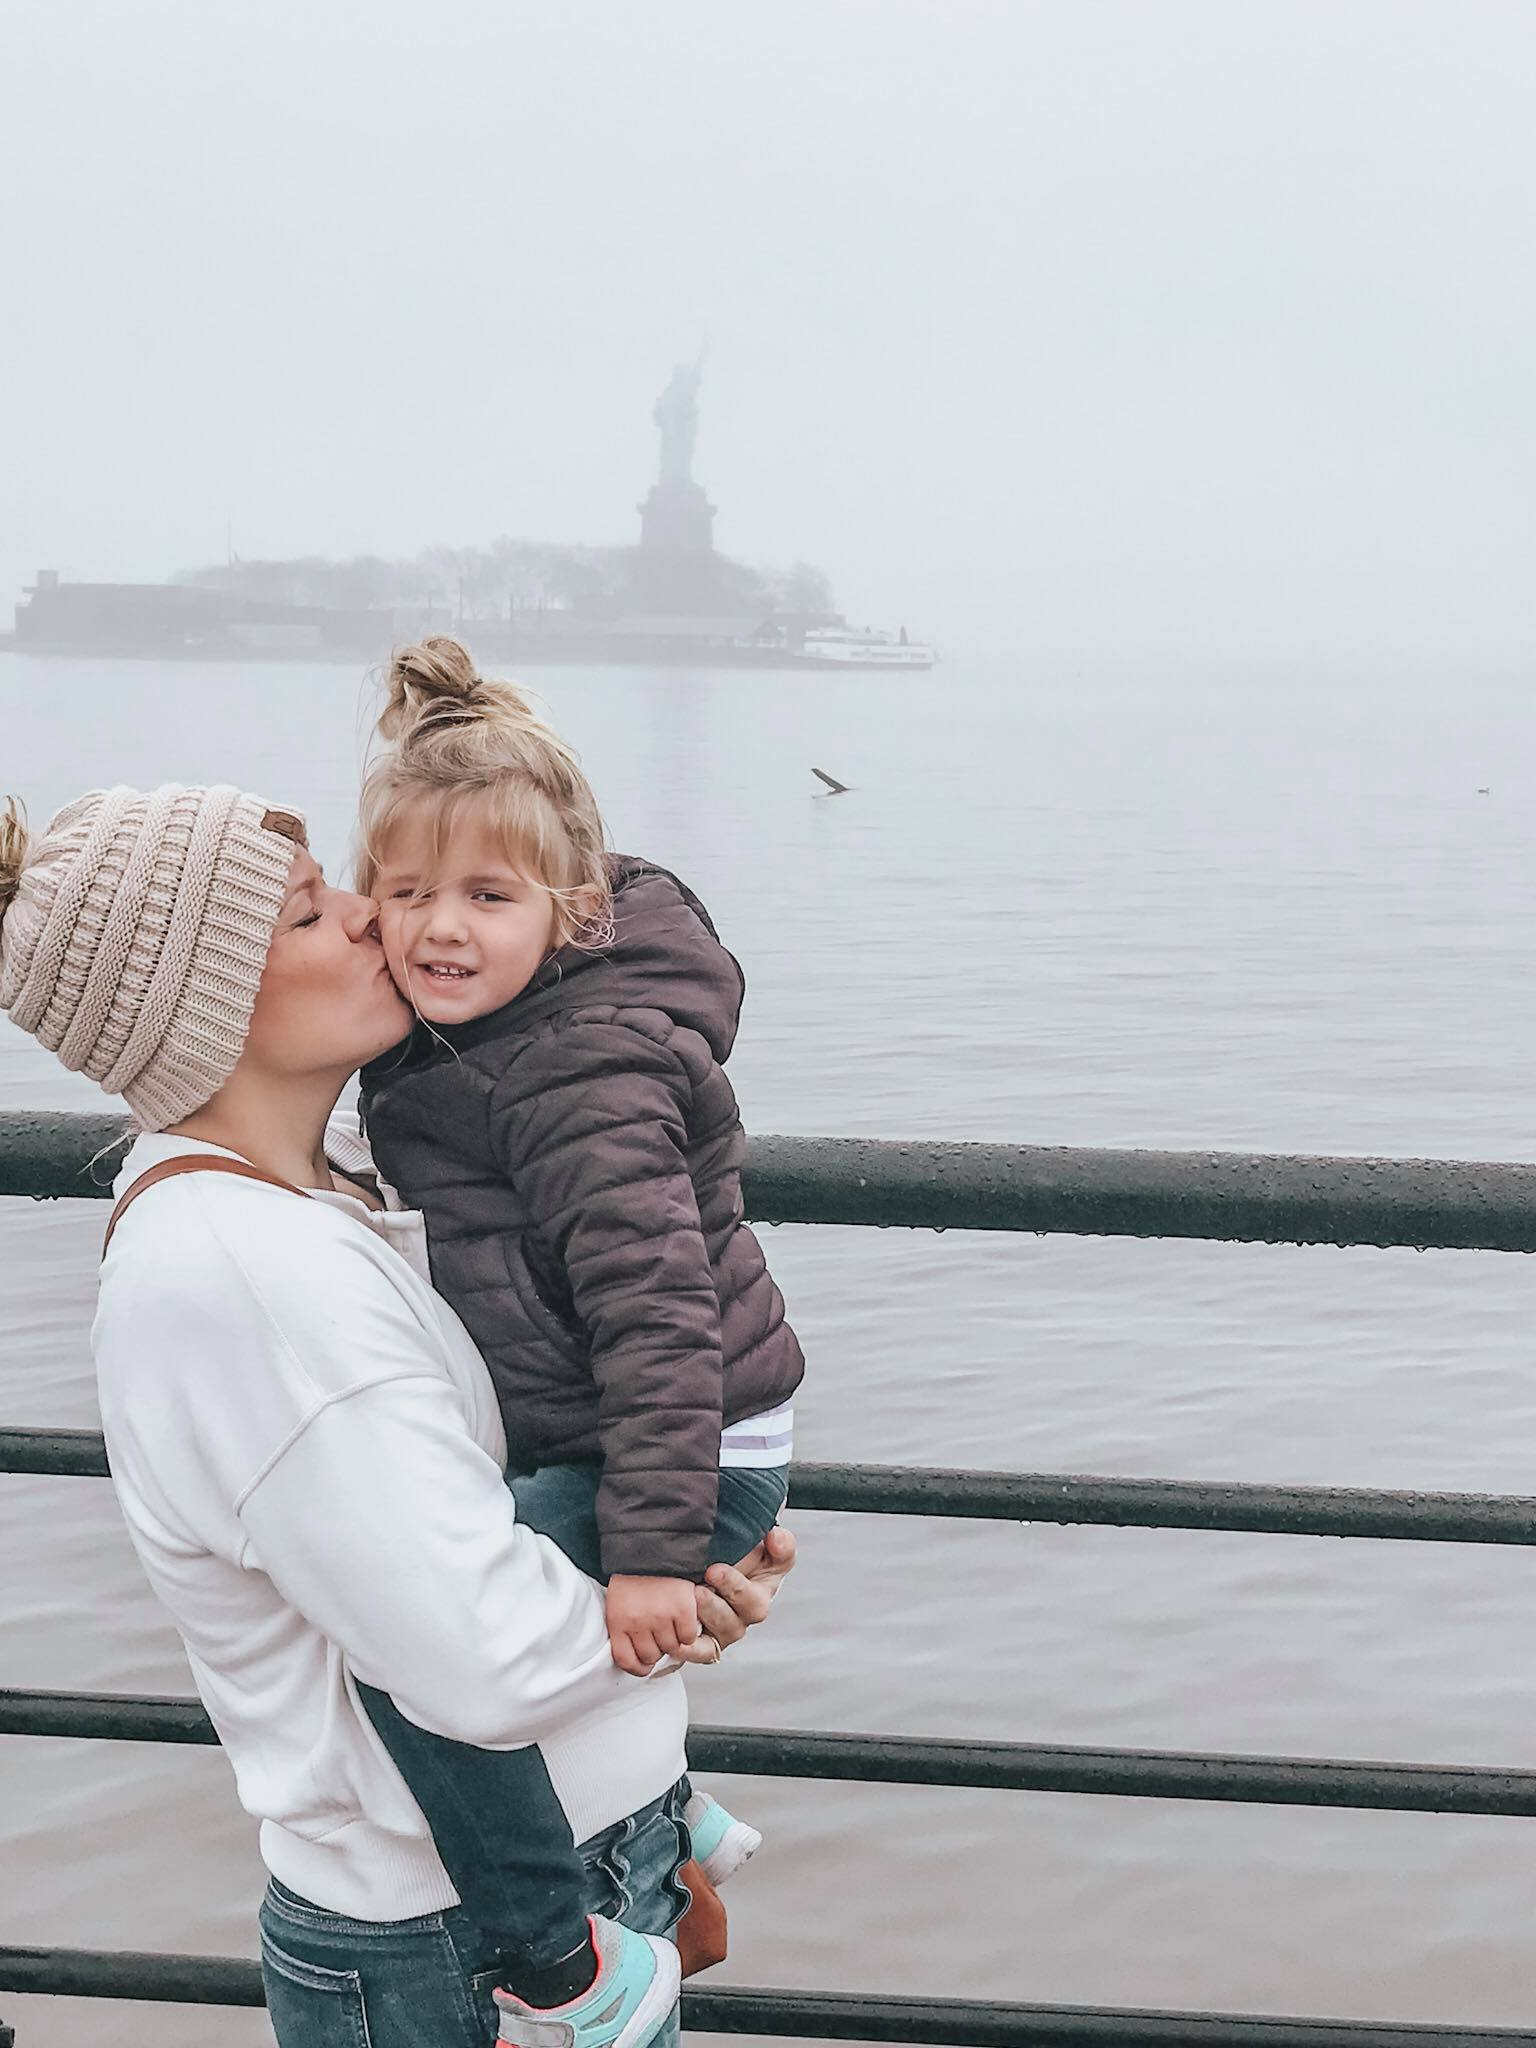 Liberty State Park is a perfect stop into or out of New York City. Give the kids a place to stretch their legs and soak in the views.